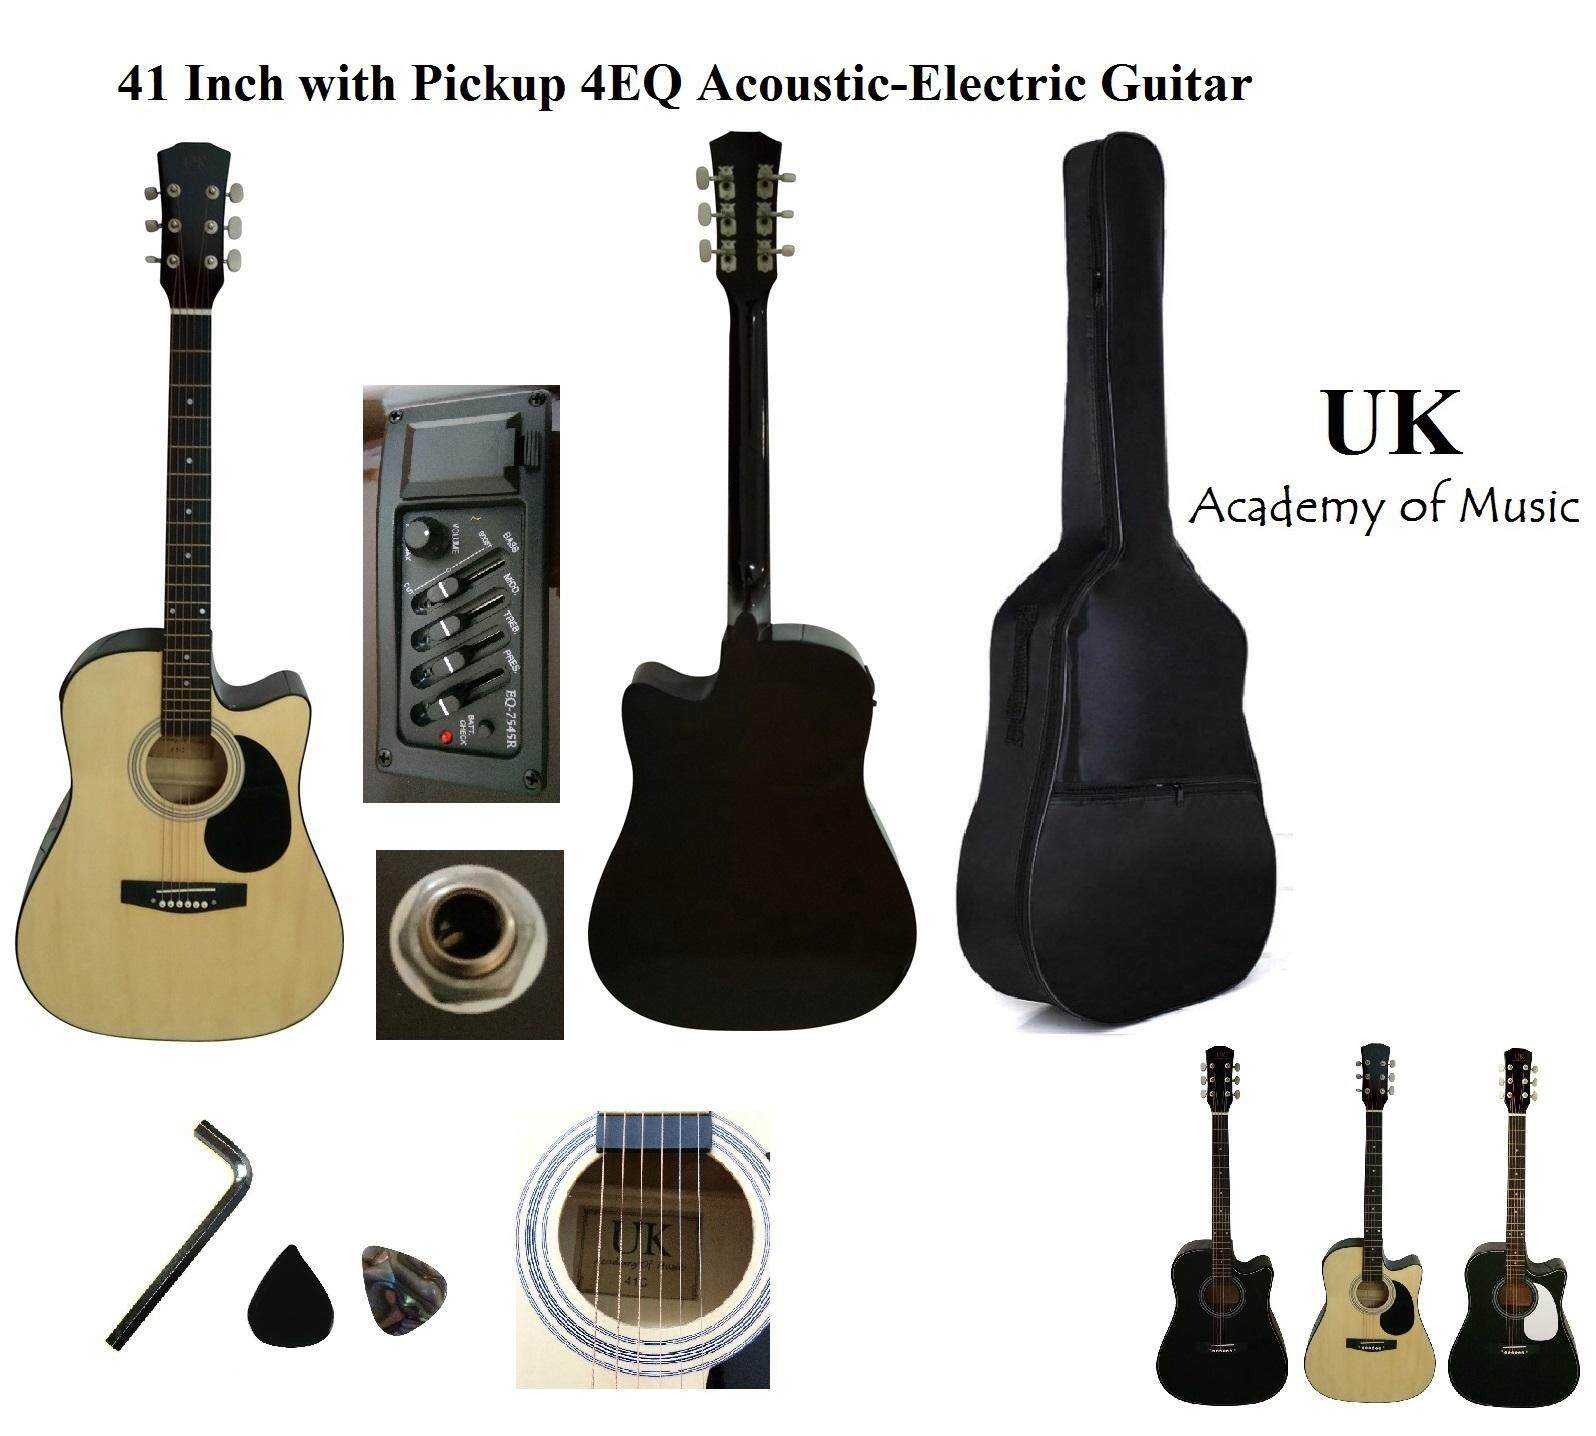 Acoustic Electric Guitars For The Best Prices In Malaysia Pickup Microphone Wire Amplifier Speaker Guitar Black Uk 41 Inch Plugin With 4eq And Pickguard Bag